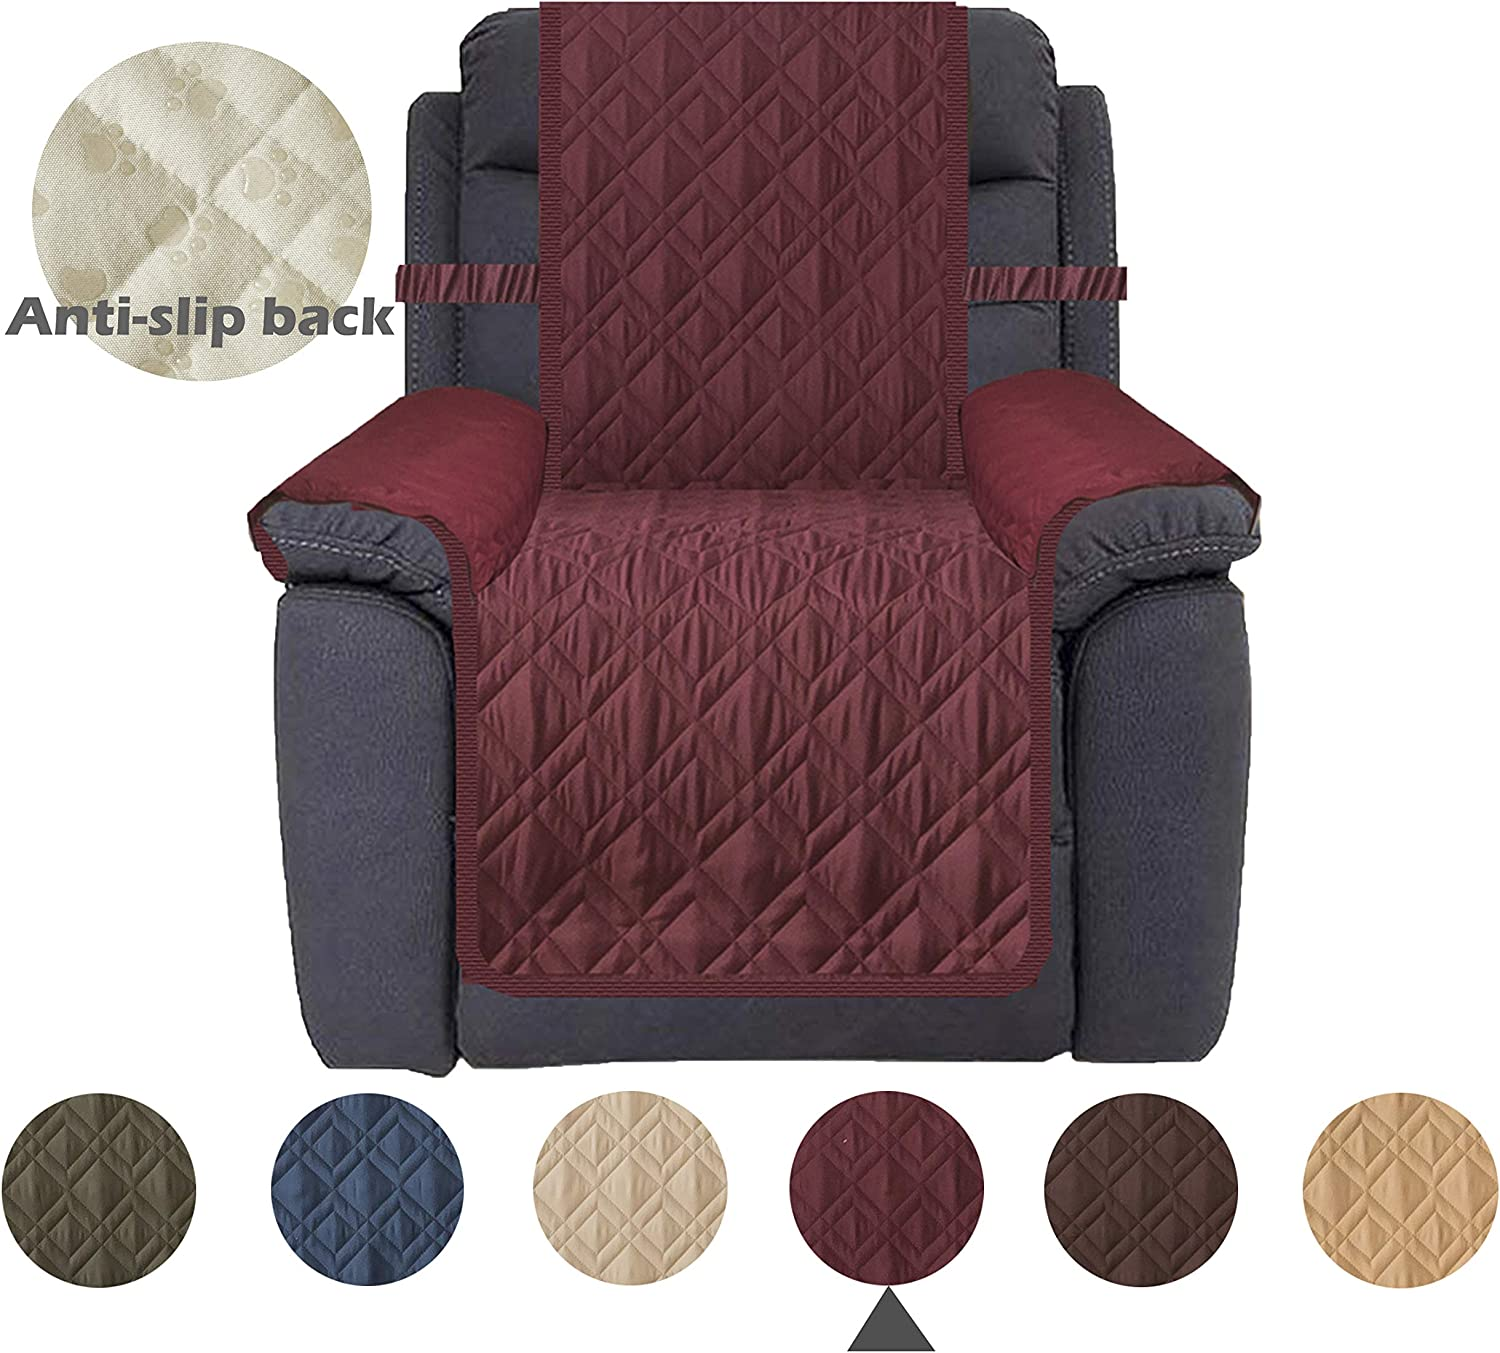 Ameritex Waterproof Nonslip Recliner Cover Christmas Decor Stay in Place, Dog Couch Chair Cover Furniture Protector, Ideal Loveseat Slipcovers for Pets and Kids (Pattern1:Burgundy, Recliner)